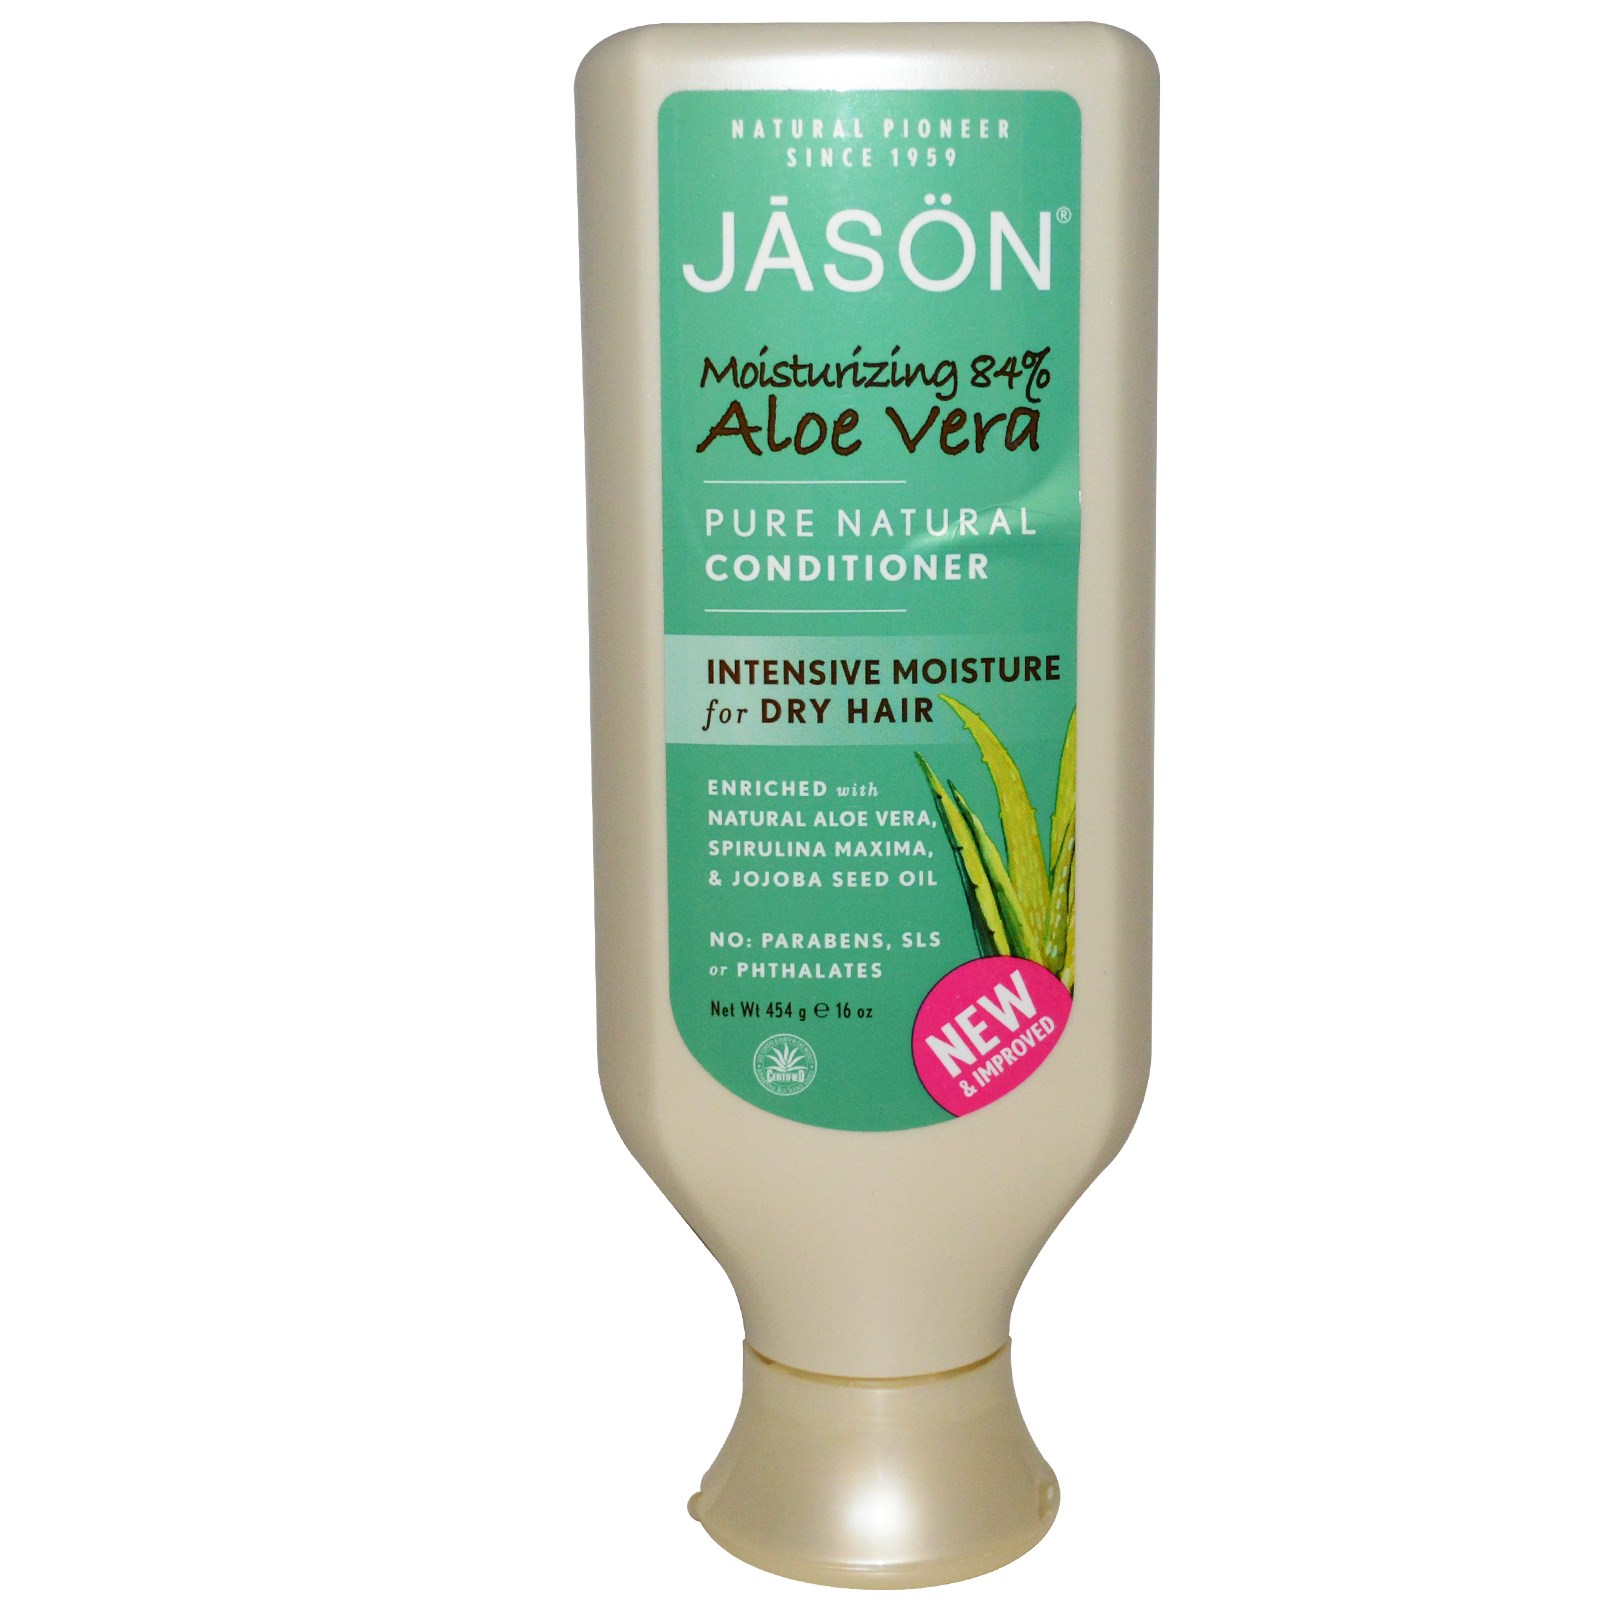 Jason Aloe Vera 84% Hair Soothing Conditioner - 16 oz